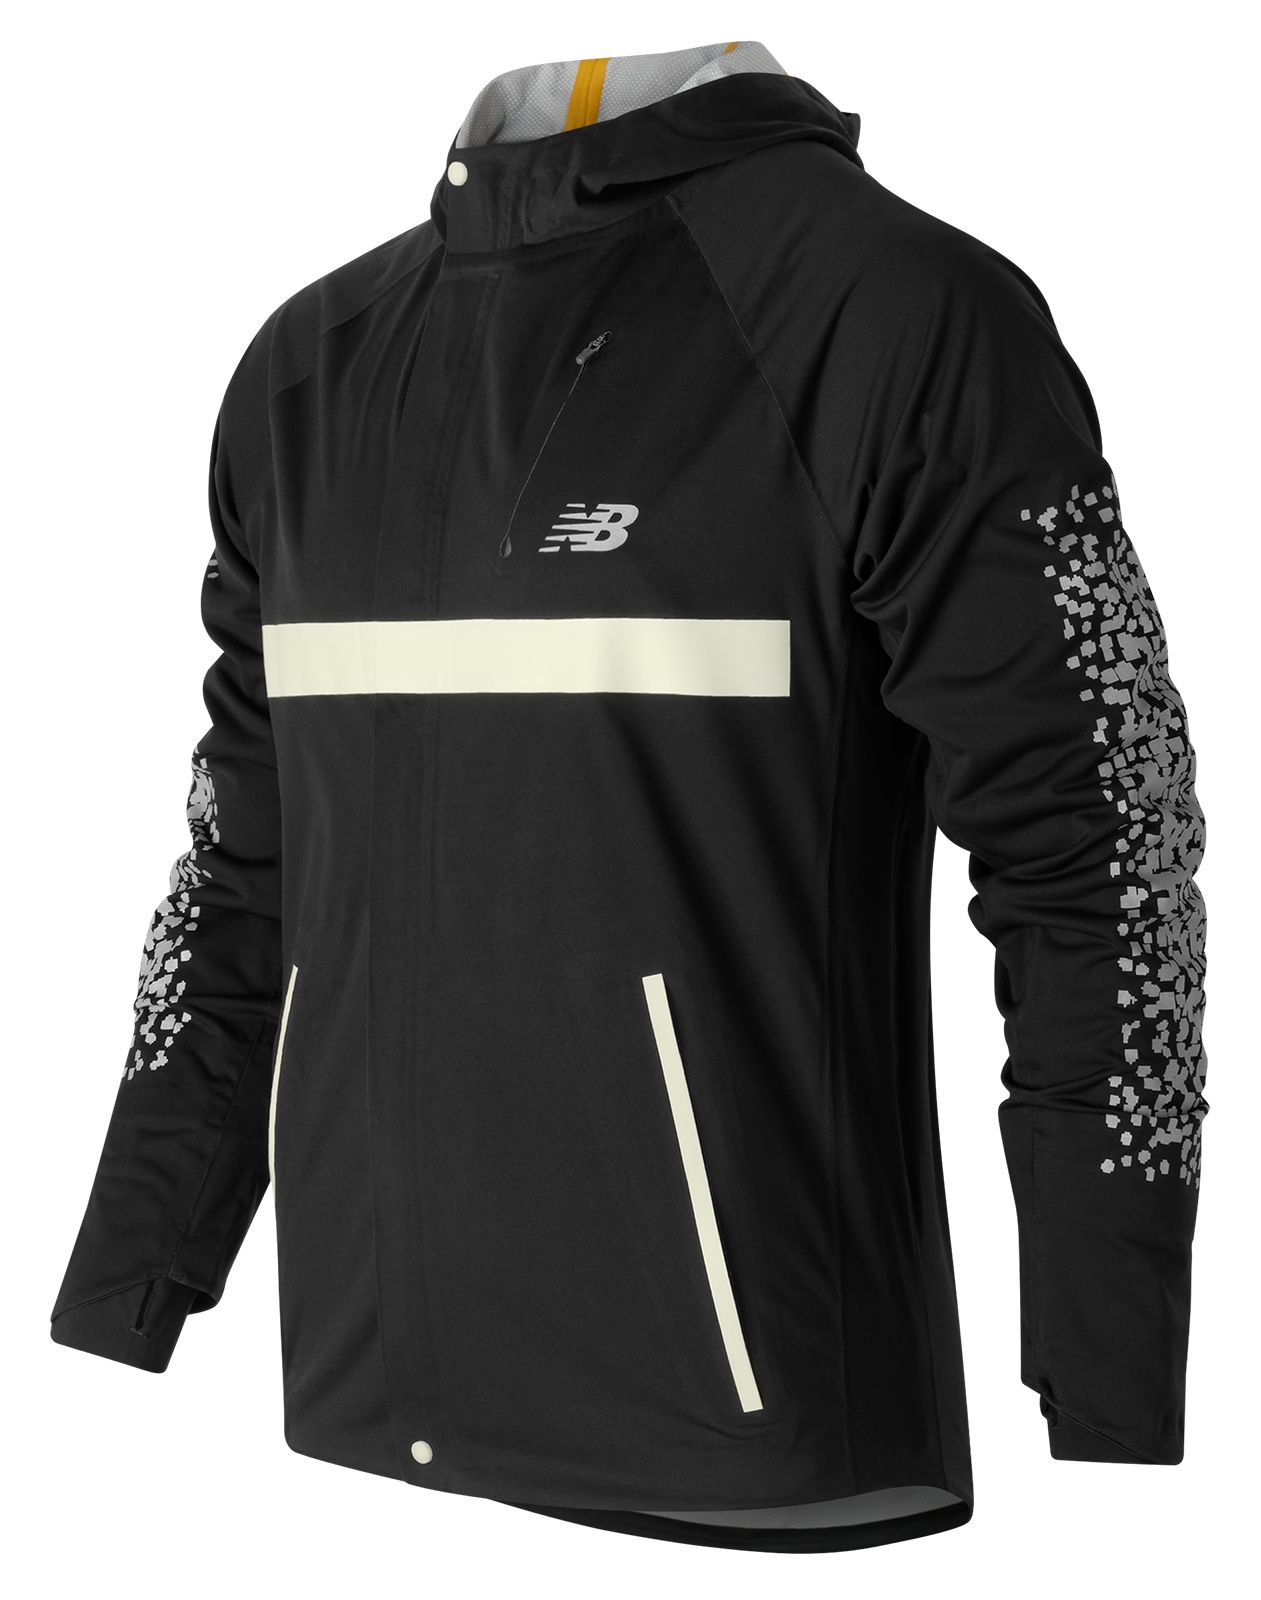 New Balance : Beacon Jacket : Men's Performance : MJ63213BK